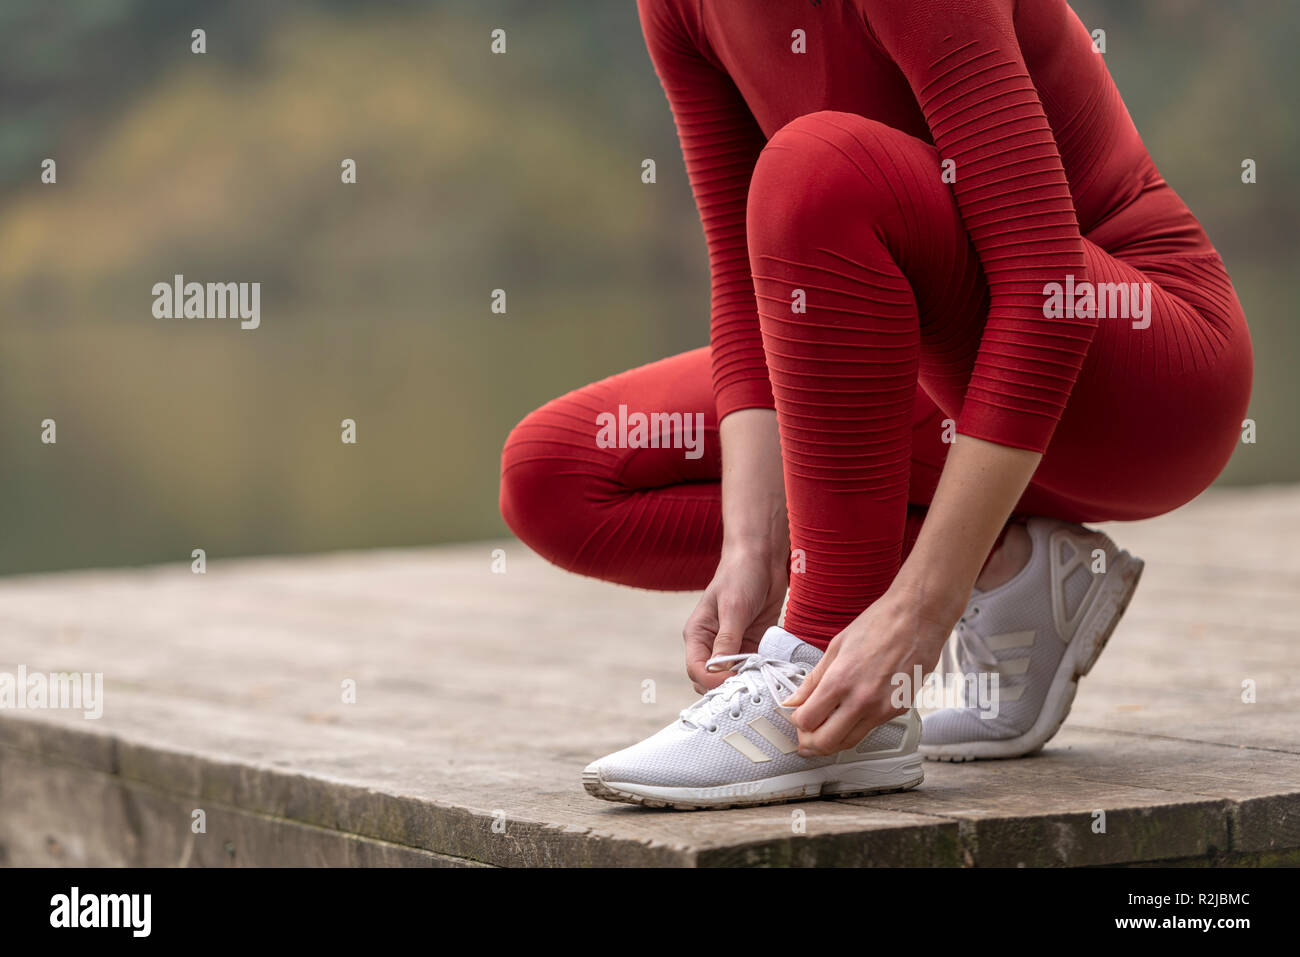 close up of a female jogger tying up her shoes before running - Stock Image